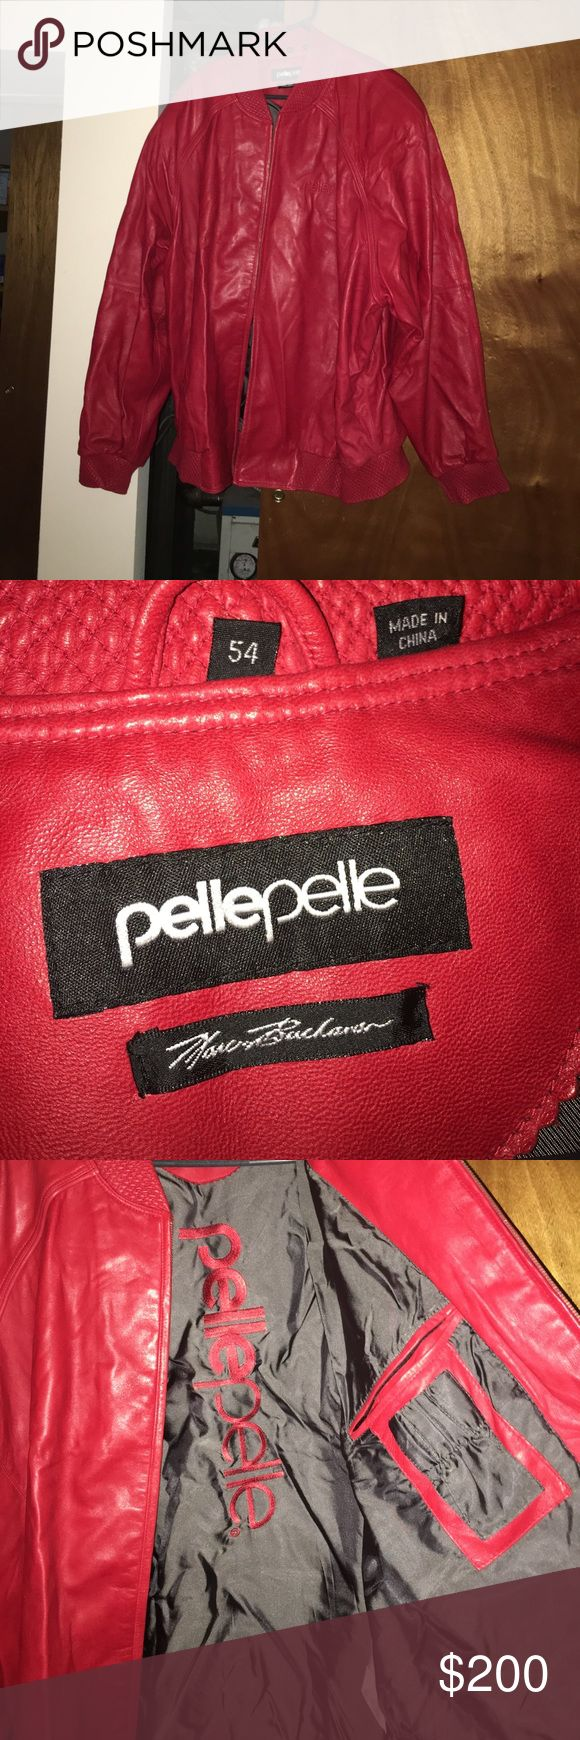 Red Pelle Pelle leather jacket Previously loved but still in great condition :) Pelle Pelle Jackets & Coats